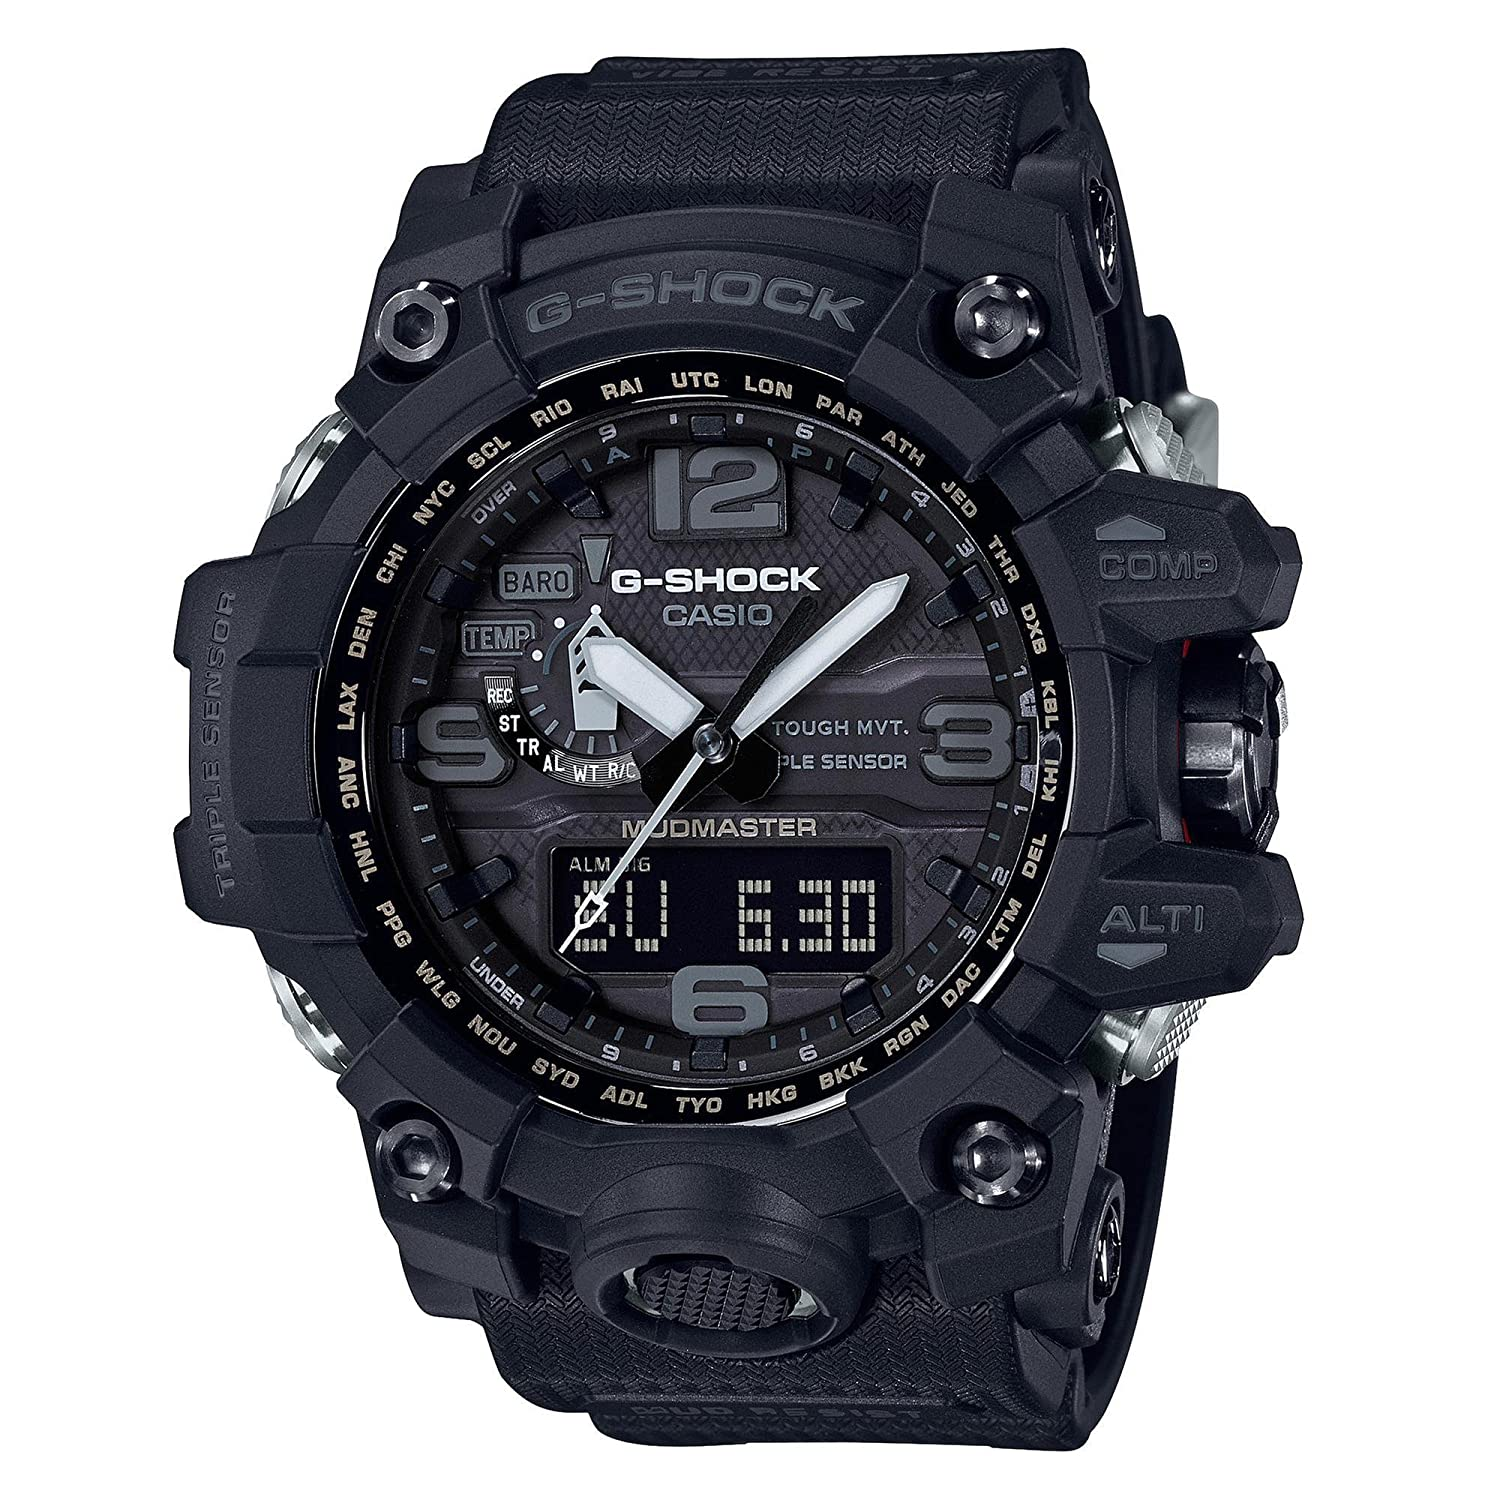 Amazon.com: Mens Casio G-Shock Triple Sensor Mudmaster Black Watch GWG1000-1A1: Watches